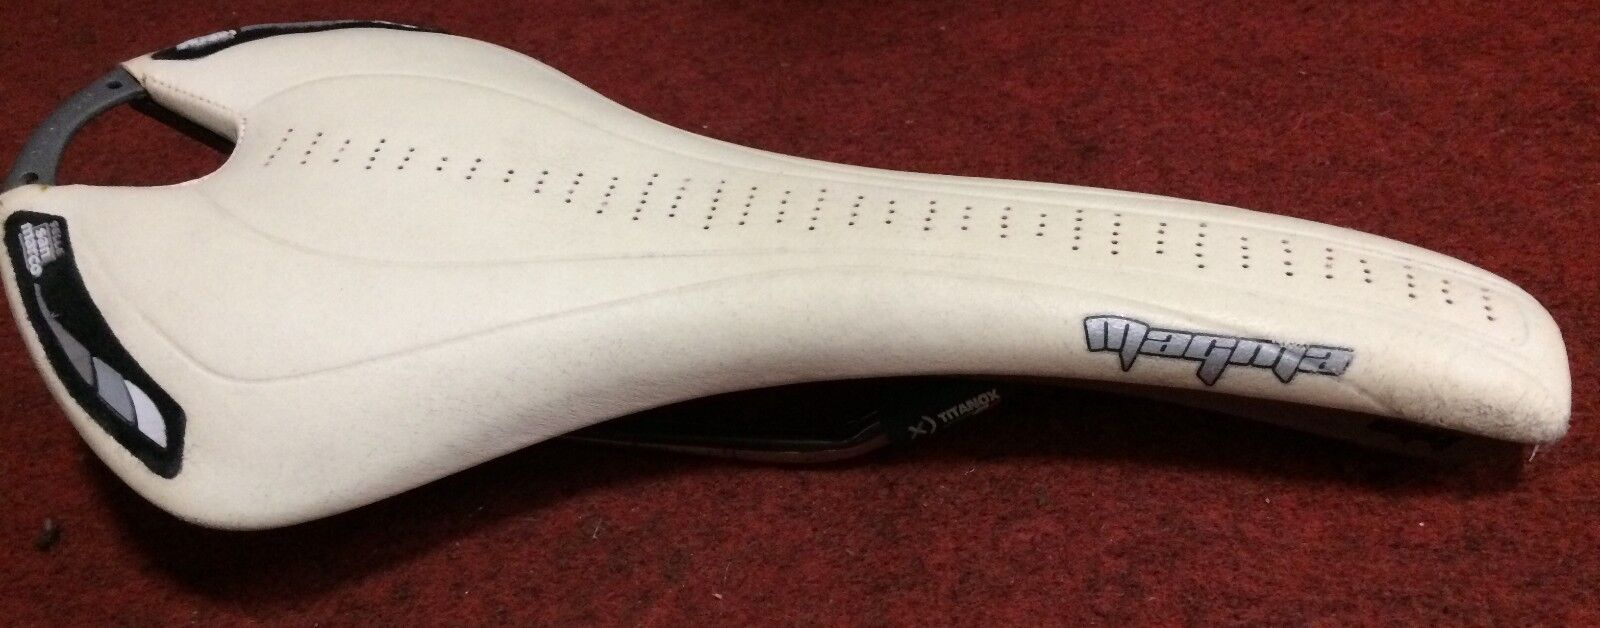 Bike saddle san  marco magma white sleigh titanox bike saddle seat  export outlet